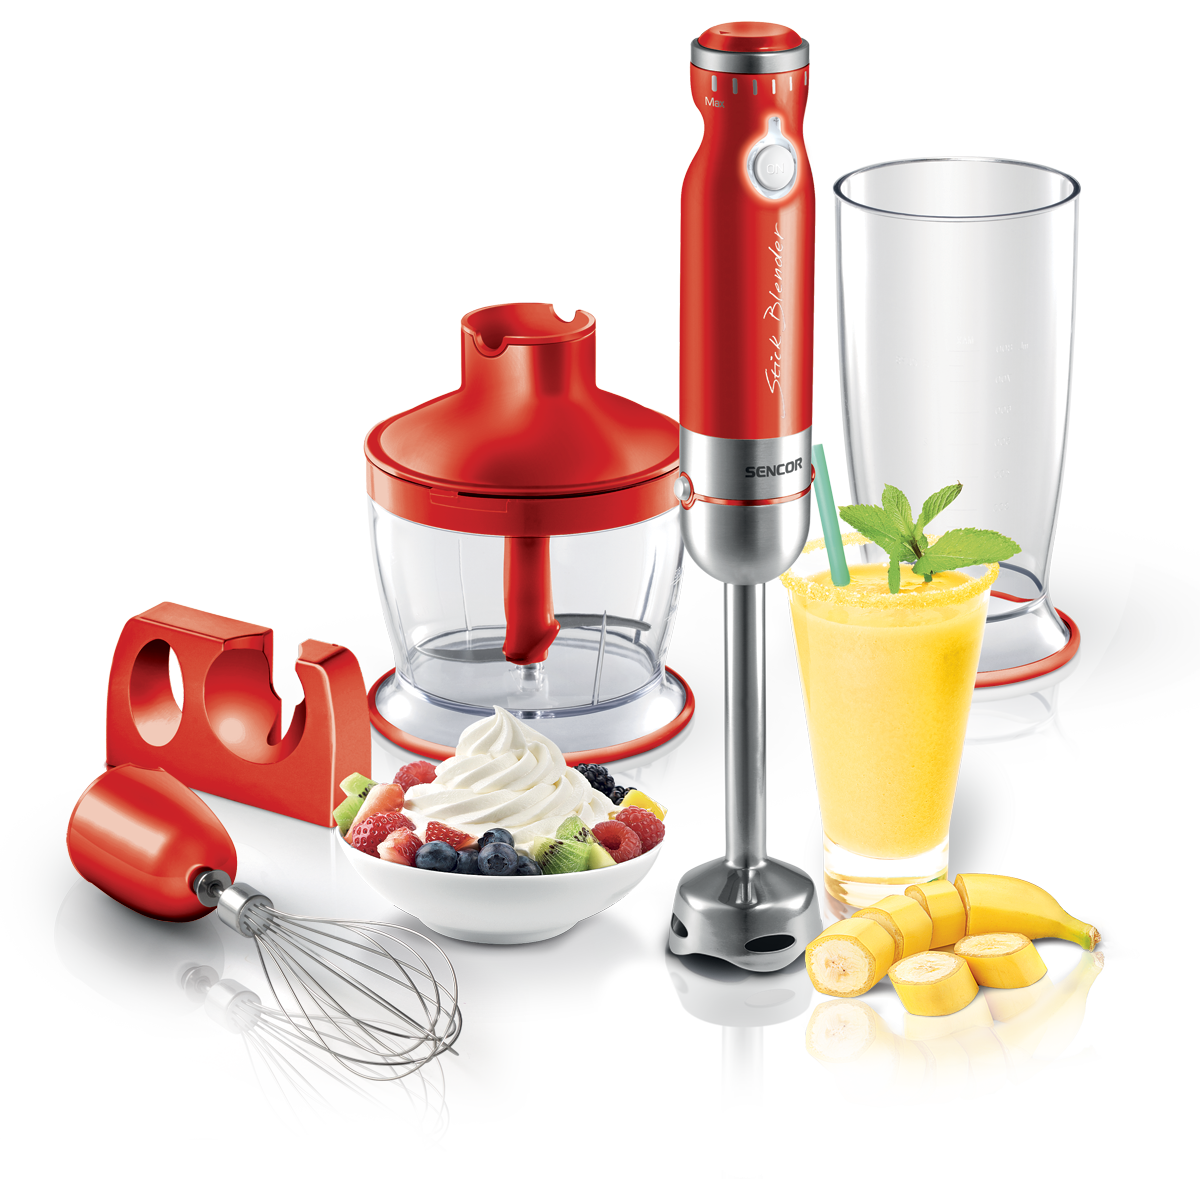 SHB 4364RD Blender vertical